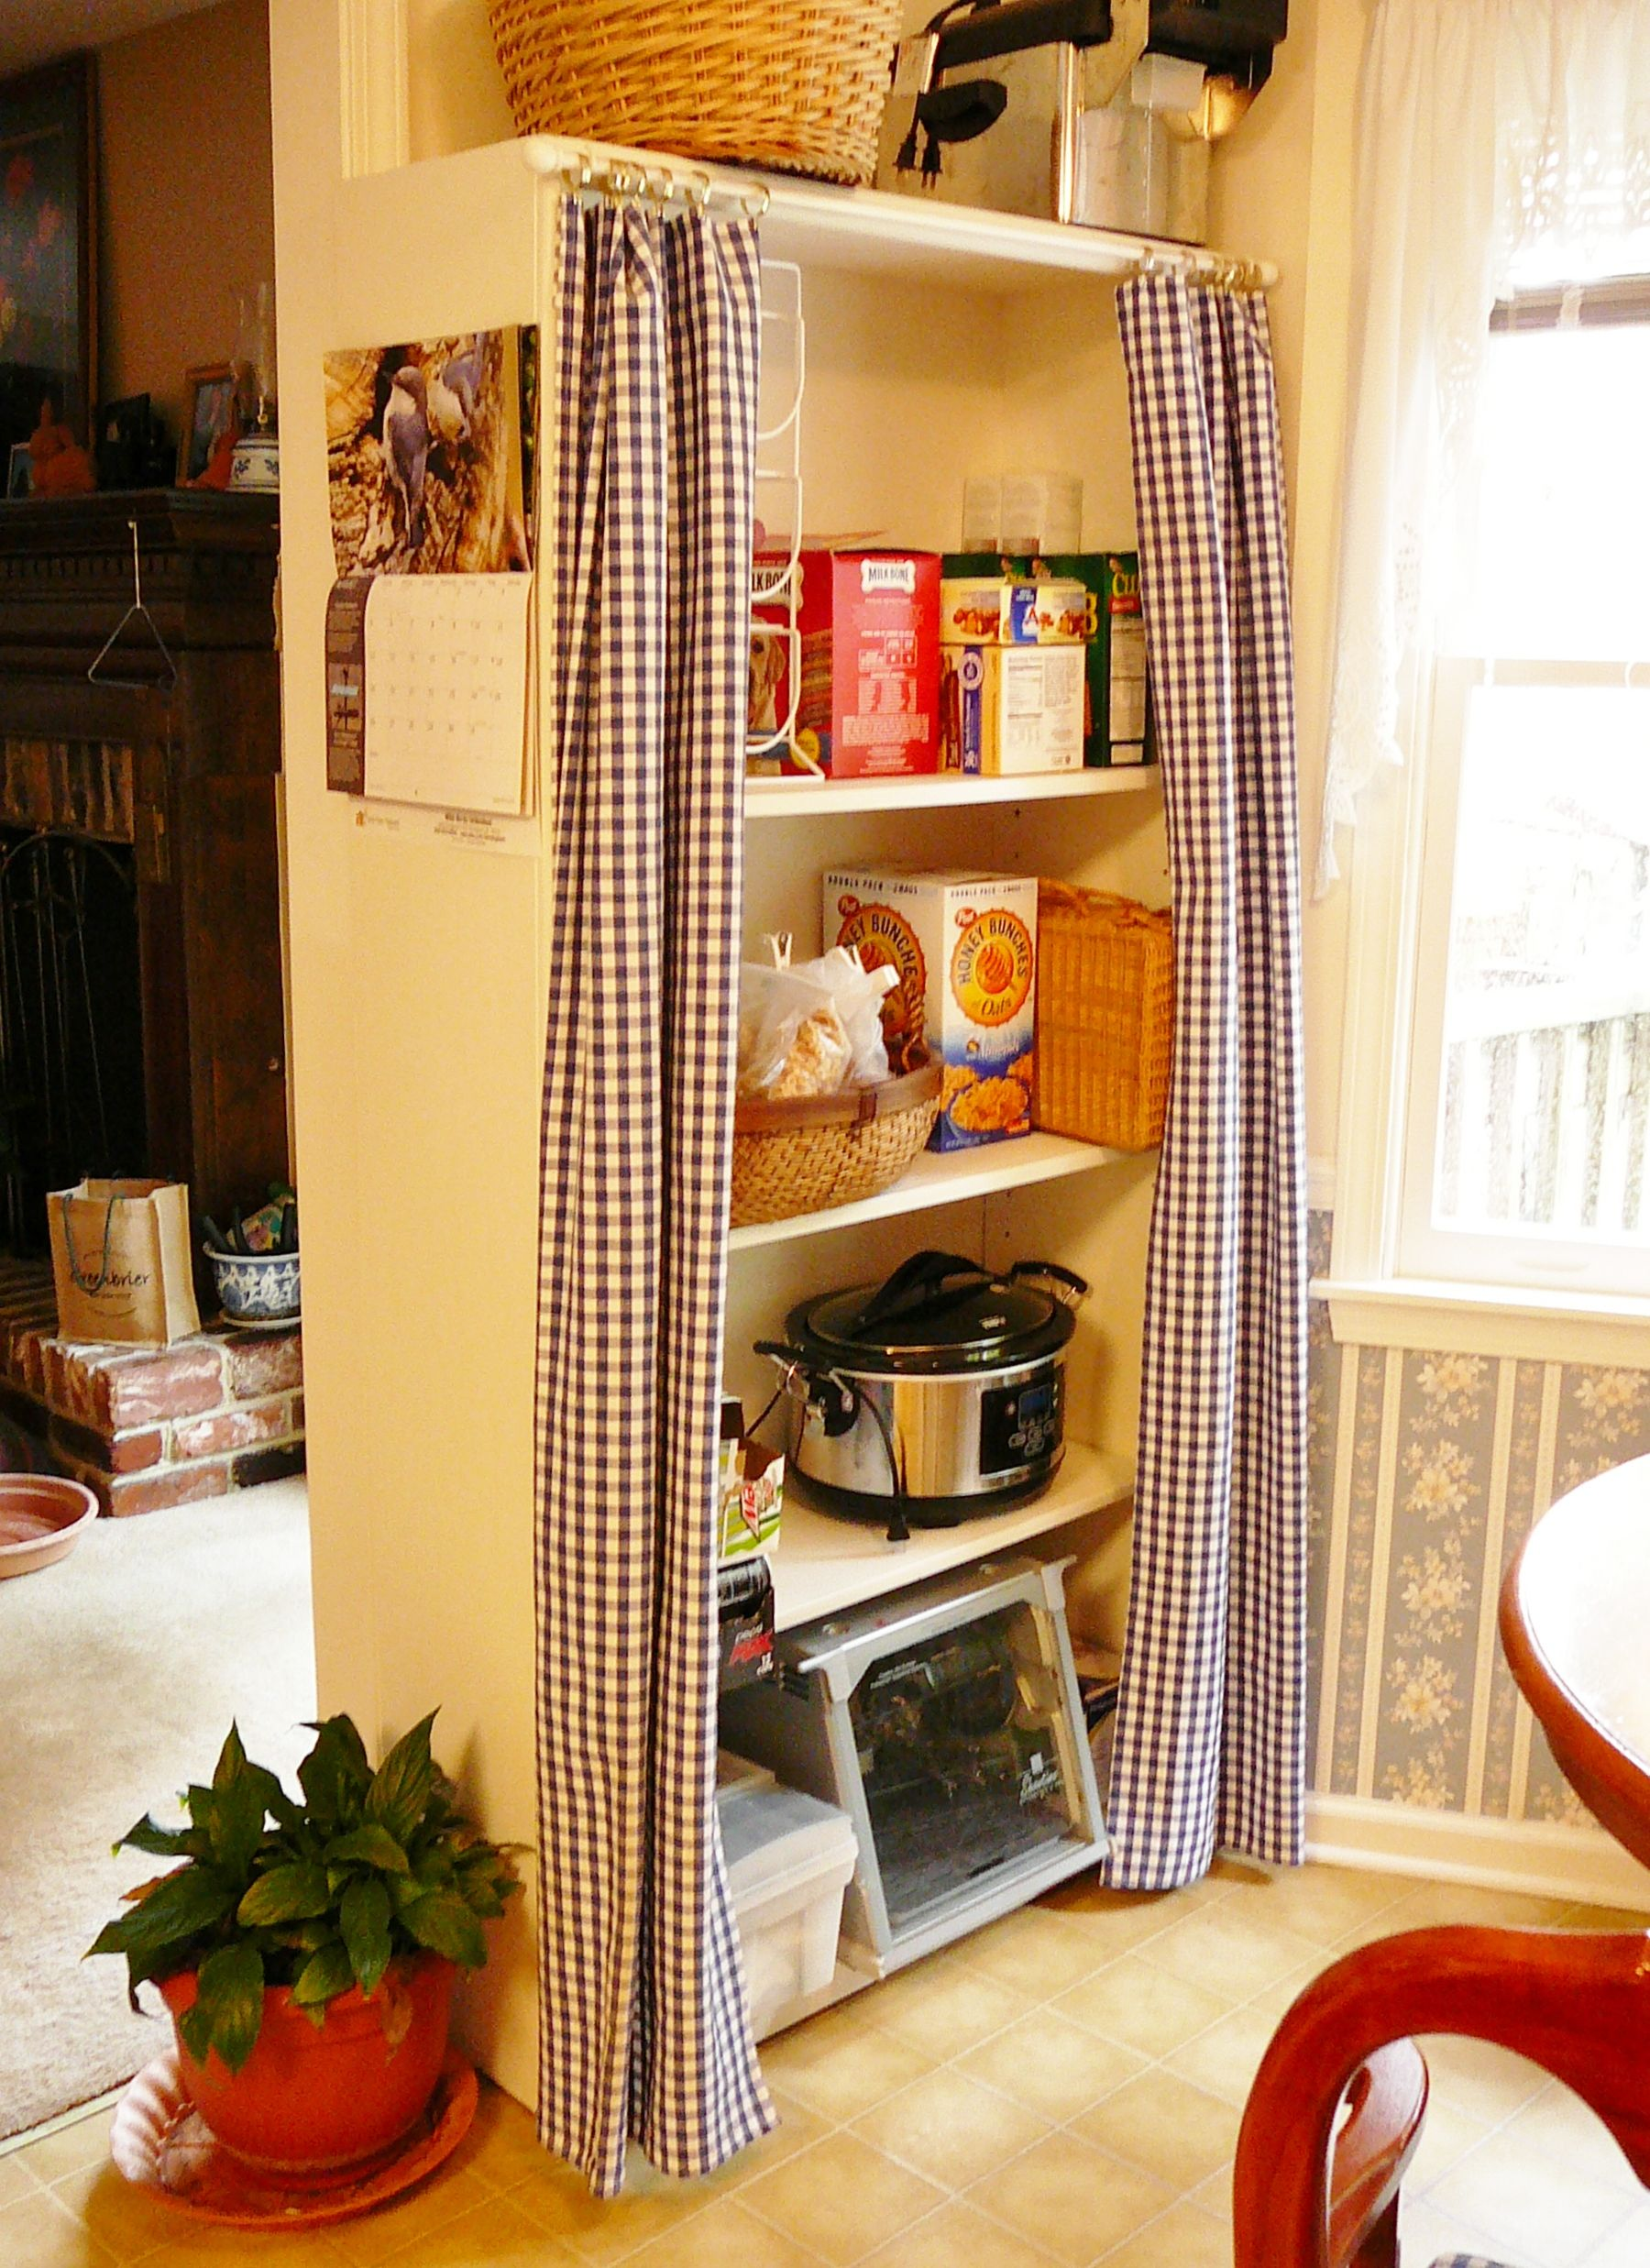 Repurpose A Bookshelf For A Pantry In The Kitchen Make Curtain Panels With Pinch Clips To Slide On Wooden Curtain Rod Home New Homes Bookshelf Pantry